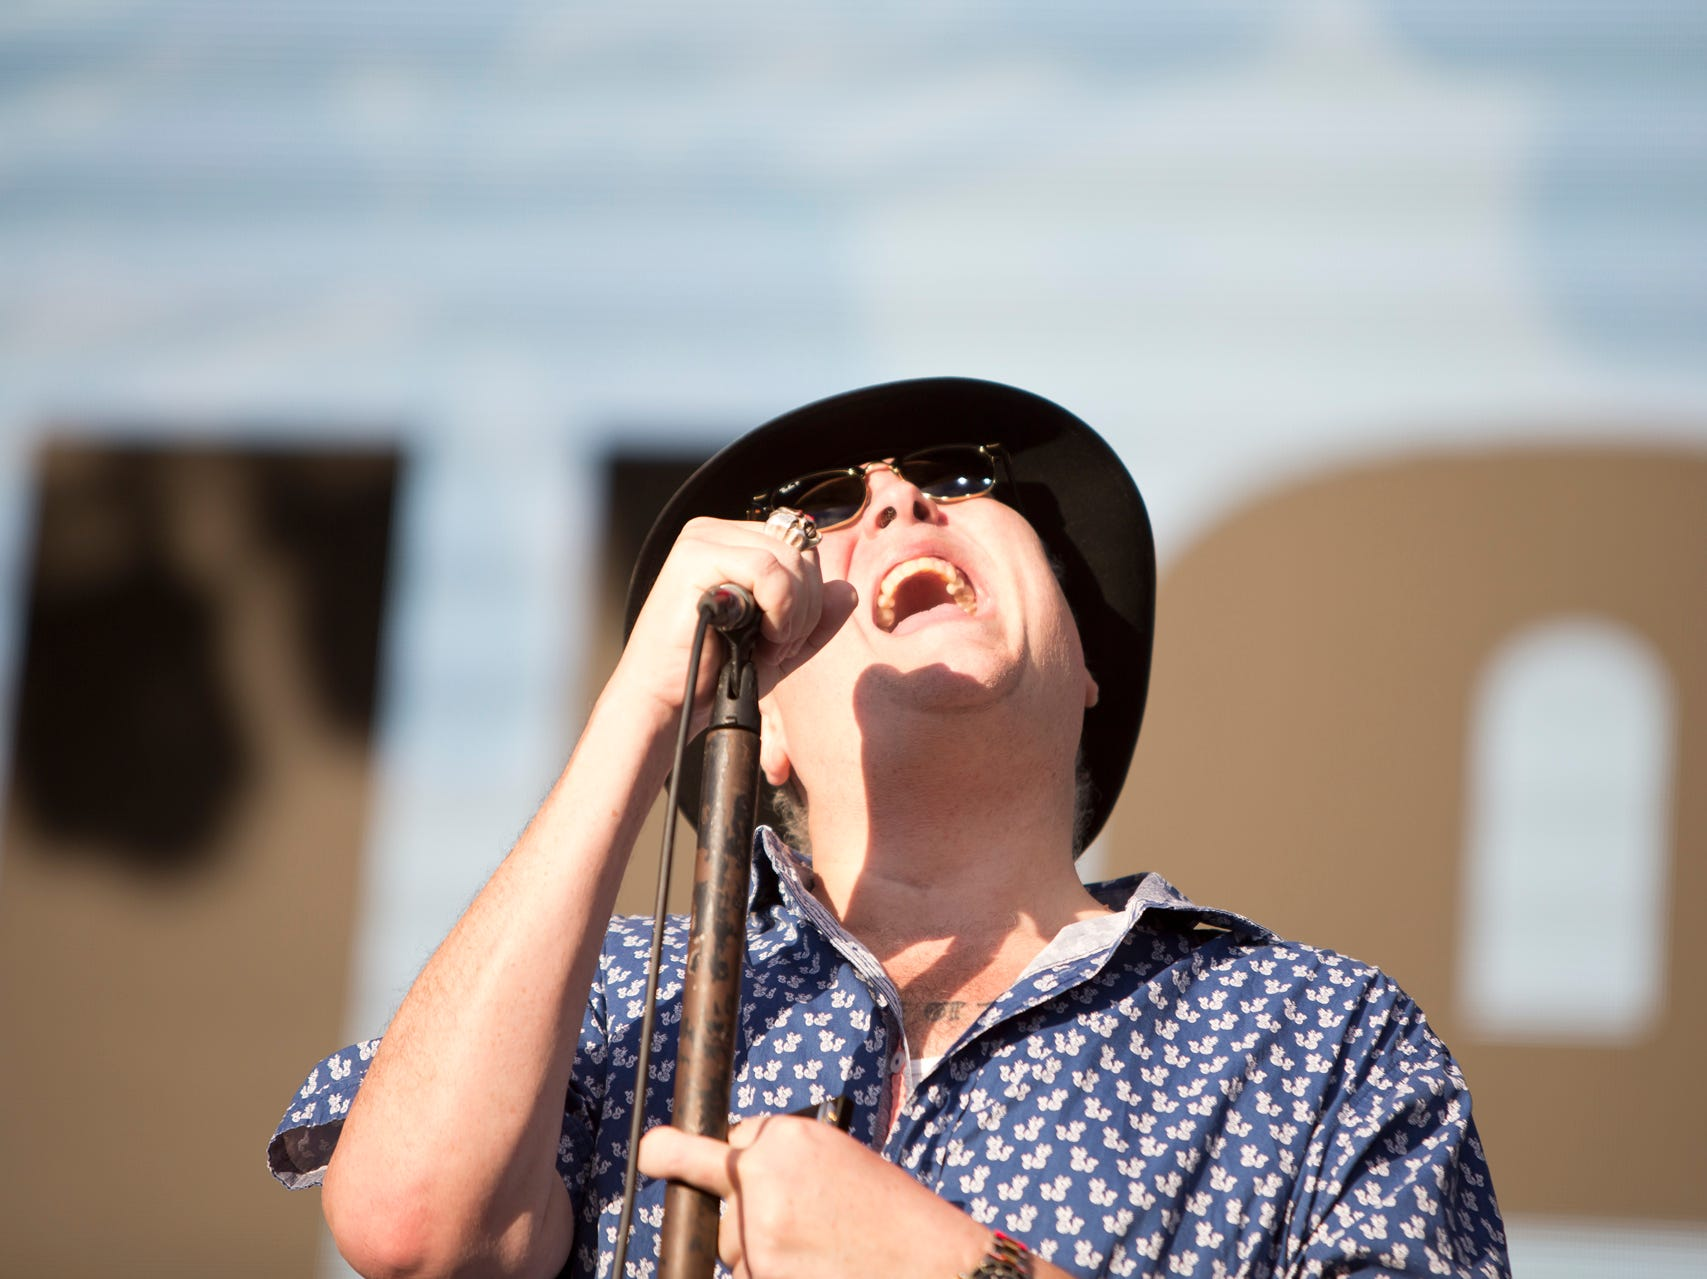 Blues Traveler performs during the Innings Festival on March 2, 2019, at Tempe Beach Park in Tempe.